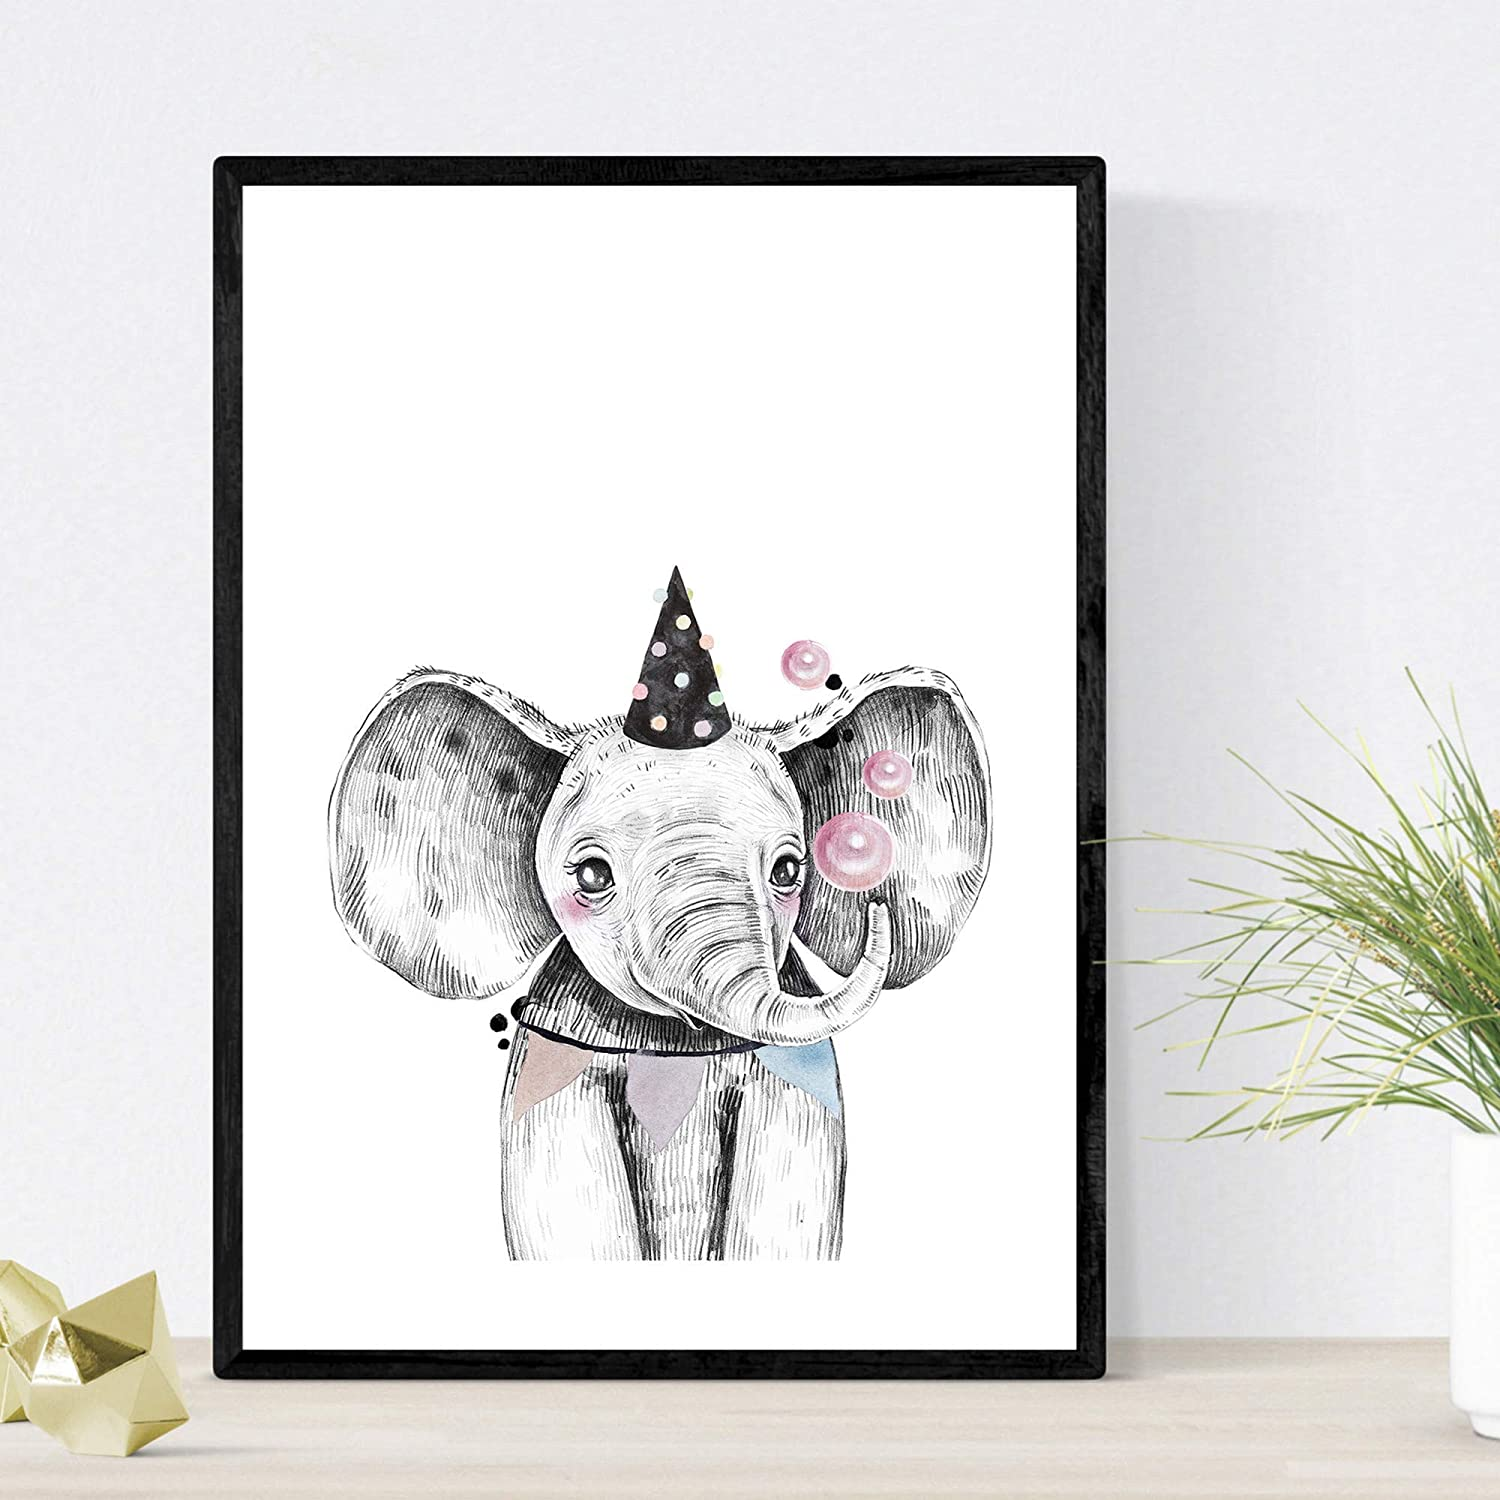 Nacnic Prints Party Animals - Set of 1 - Unframed 8x11 inch Size - 250g Paper - Beautiful Poster Painting for Home Office Living Room